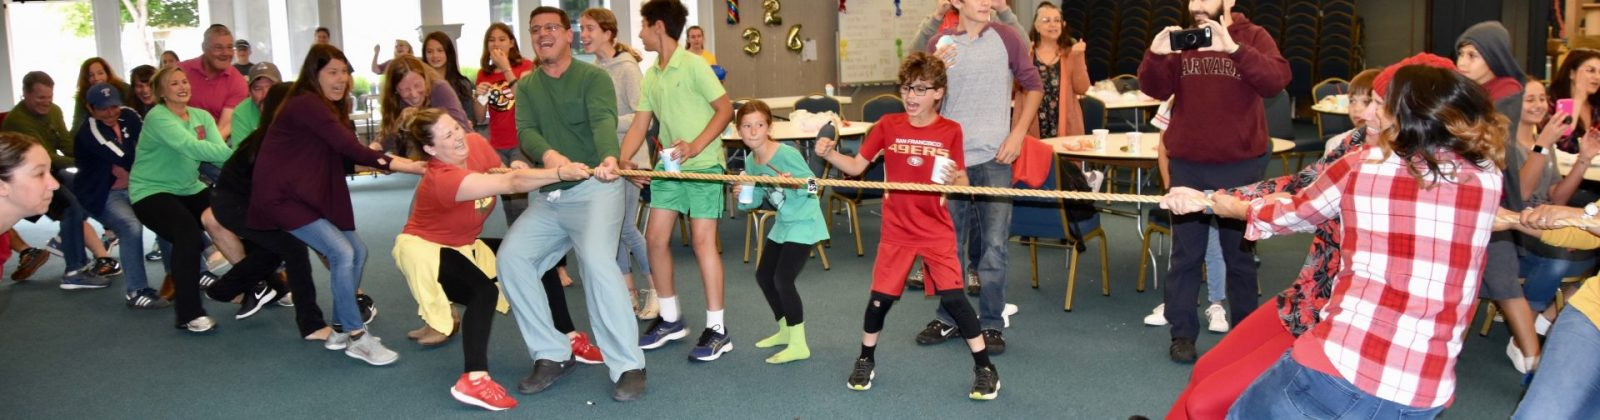 Adults playing tug-of-war against kids